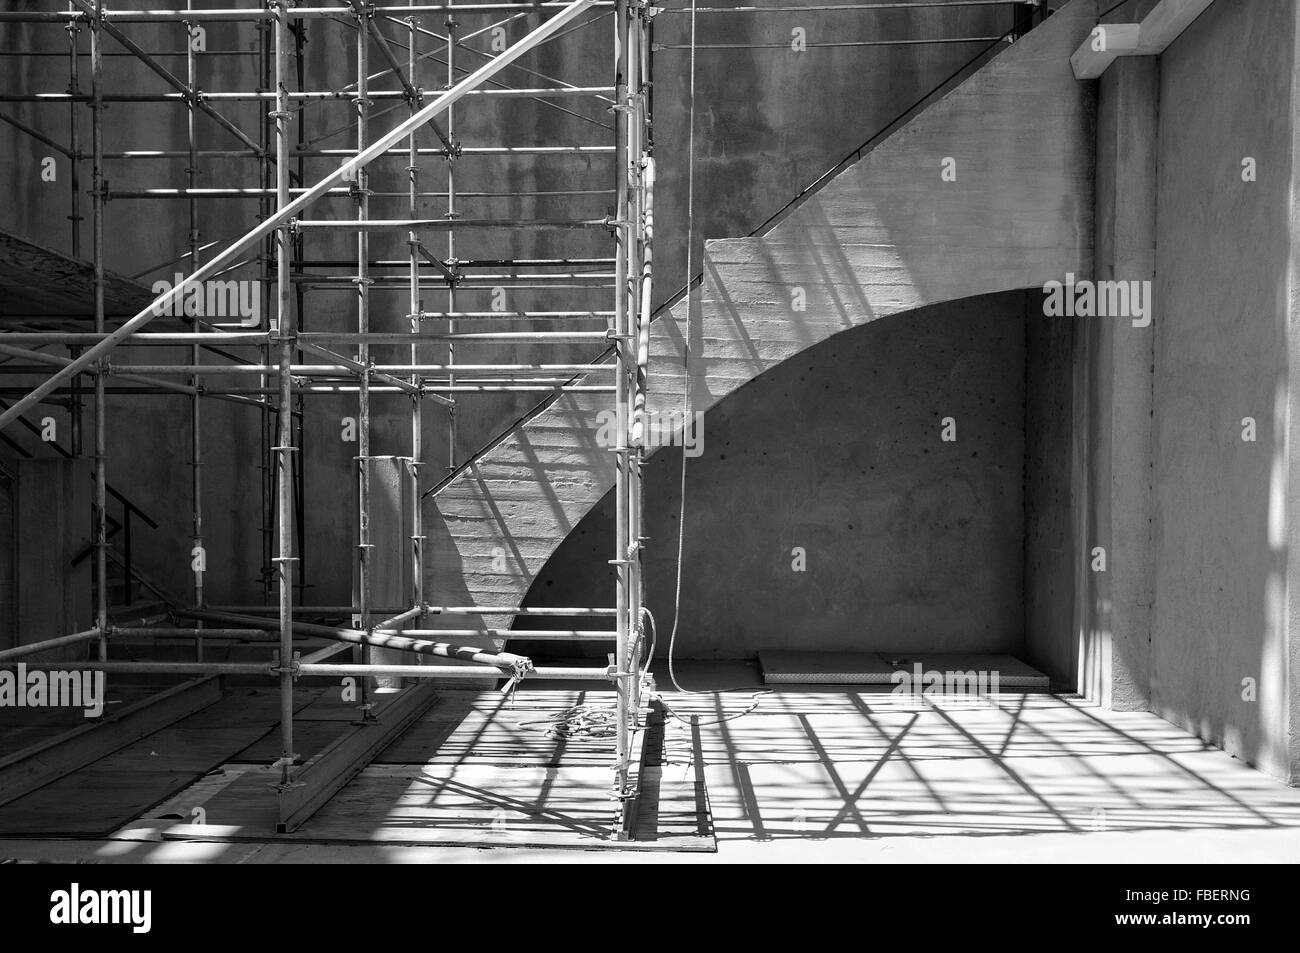 Scaffolding On Building - Stock Image